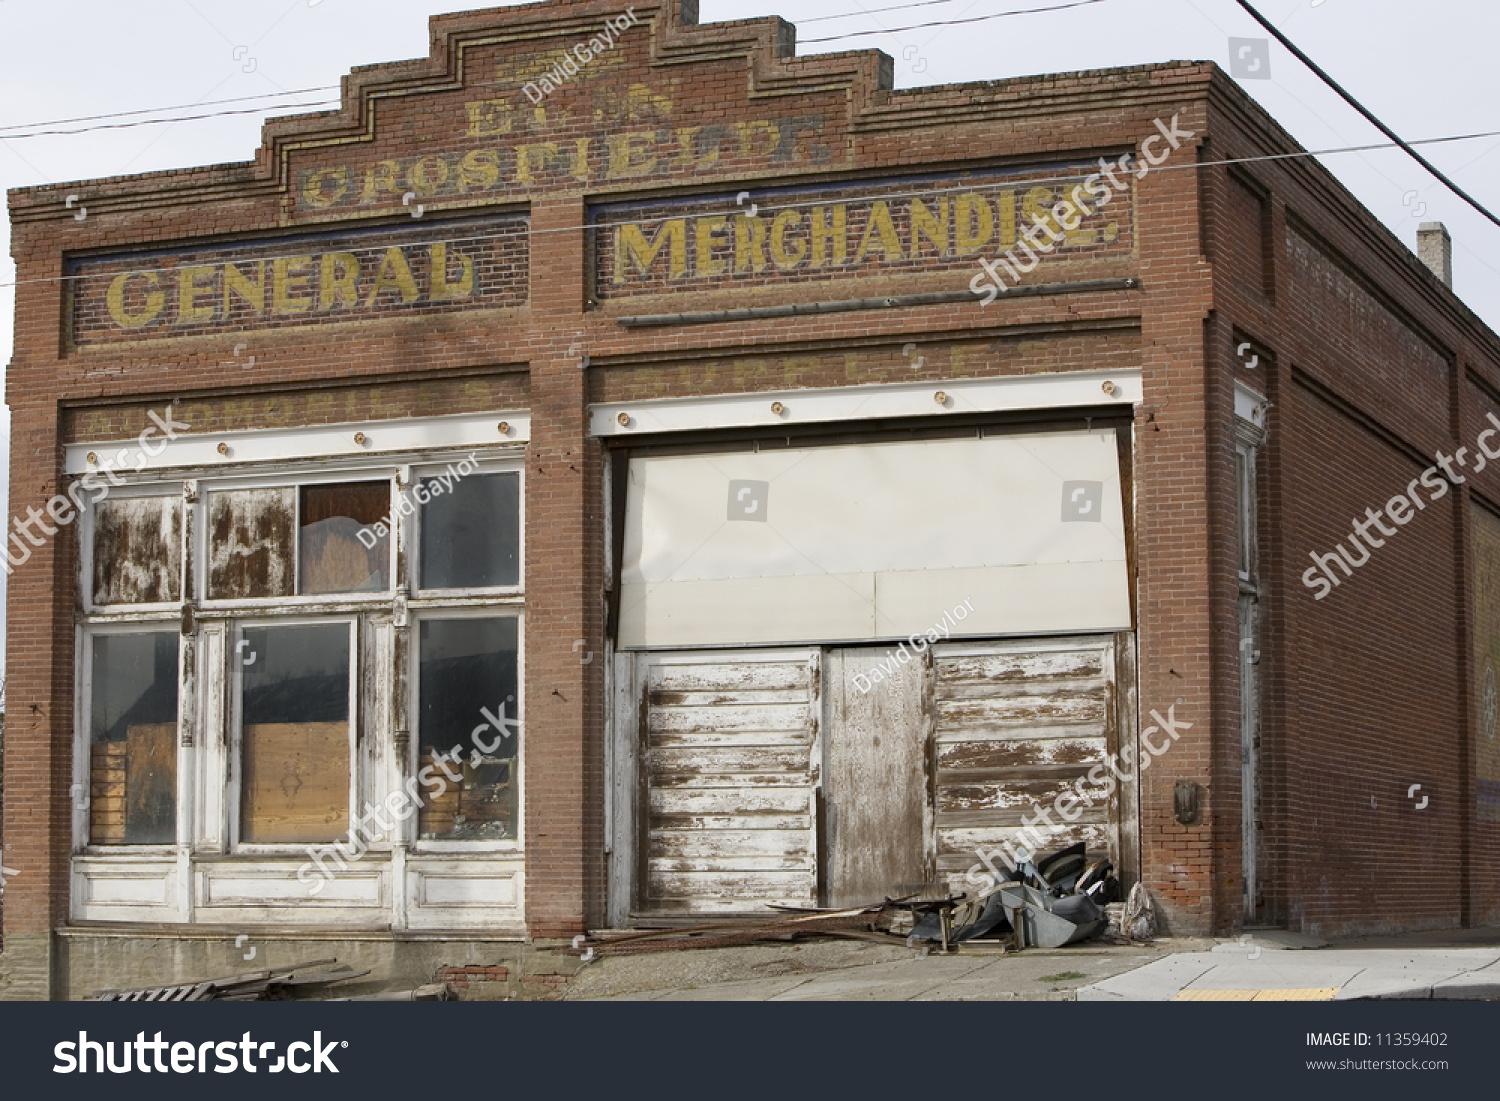 old general store front - photo #19